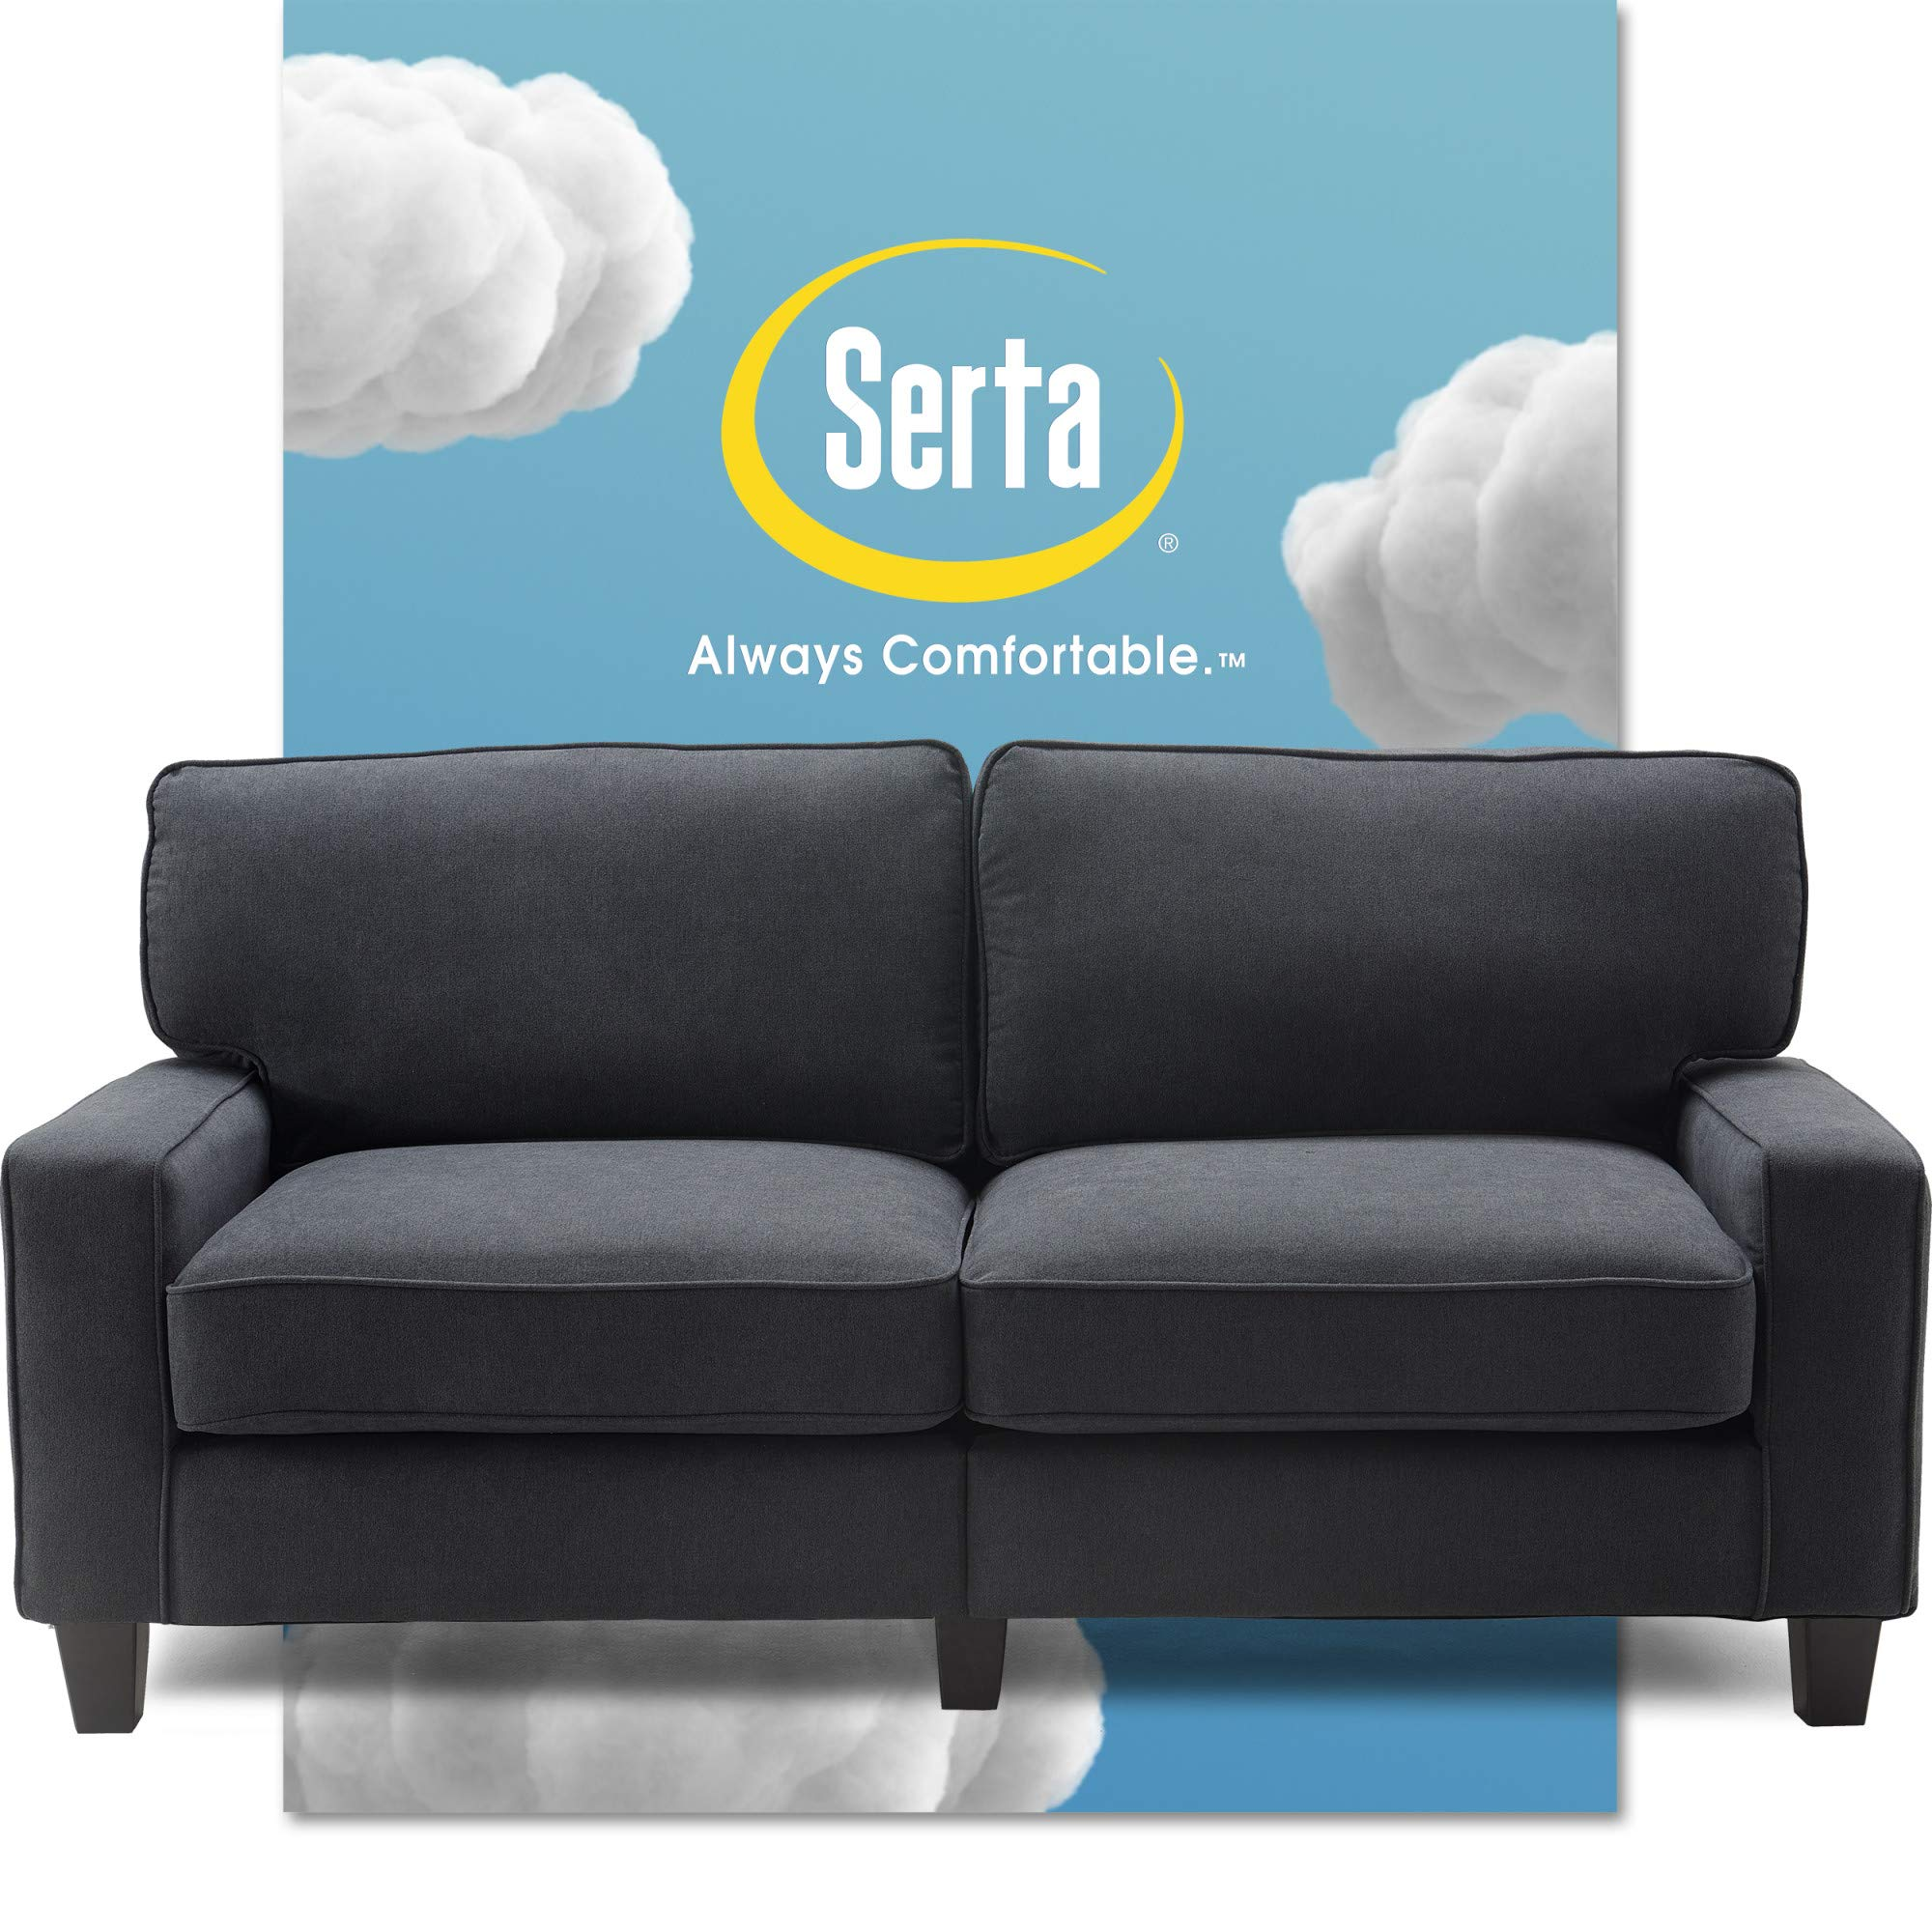 """Serta Palisades Upholstered Sofas for Living Room Modern Design Couch, Straight Arms, Soft Fabric Upholstery, Tool-Free Assembly, 73"""", Charcoal"""